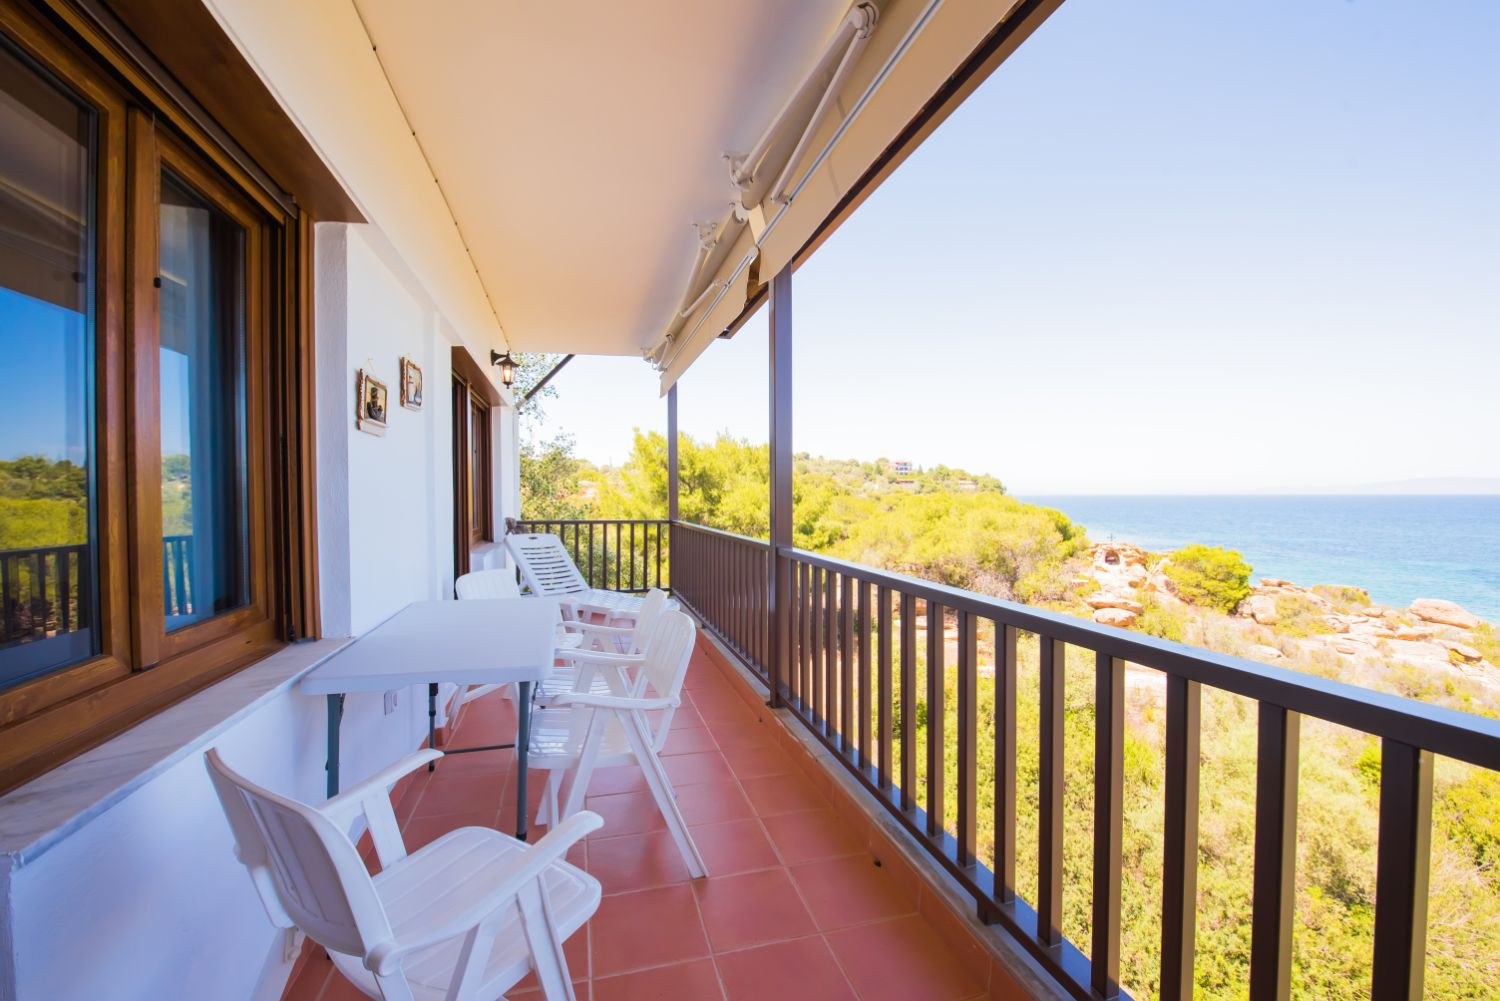 Balcony seating area and view